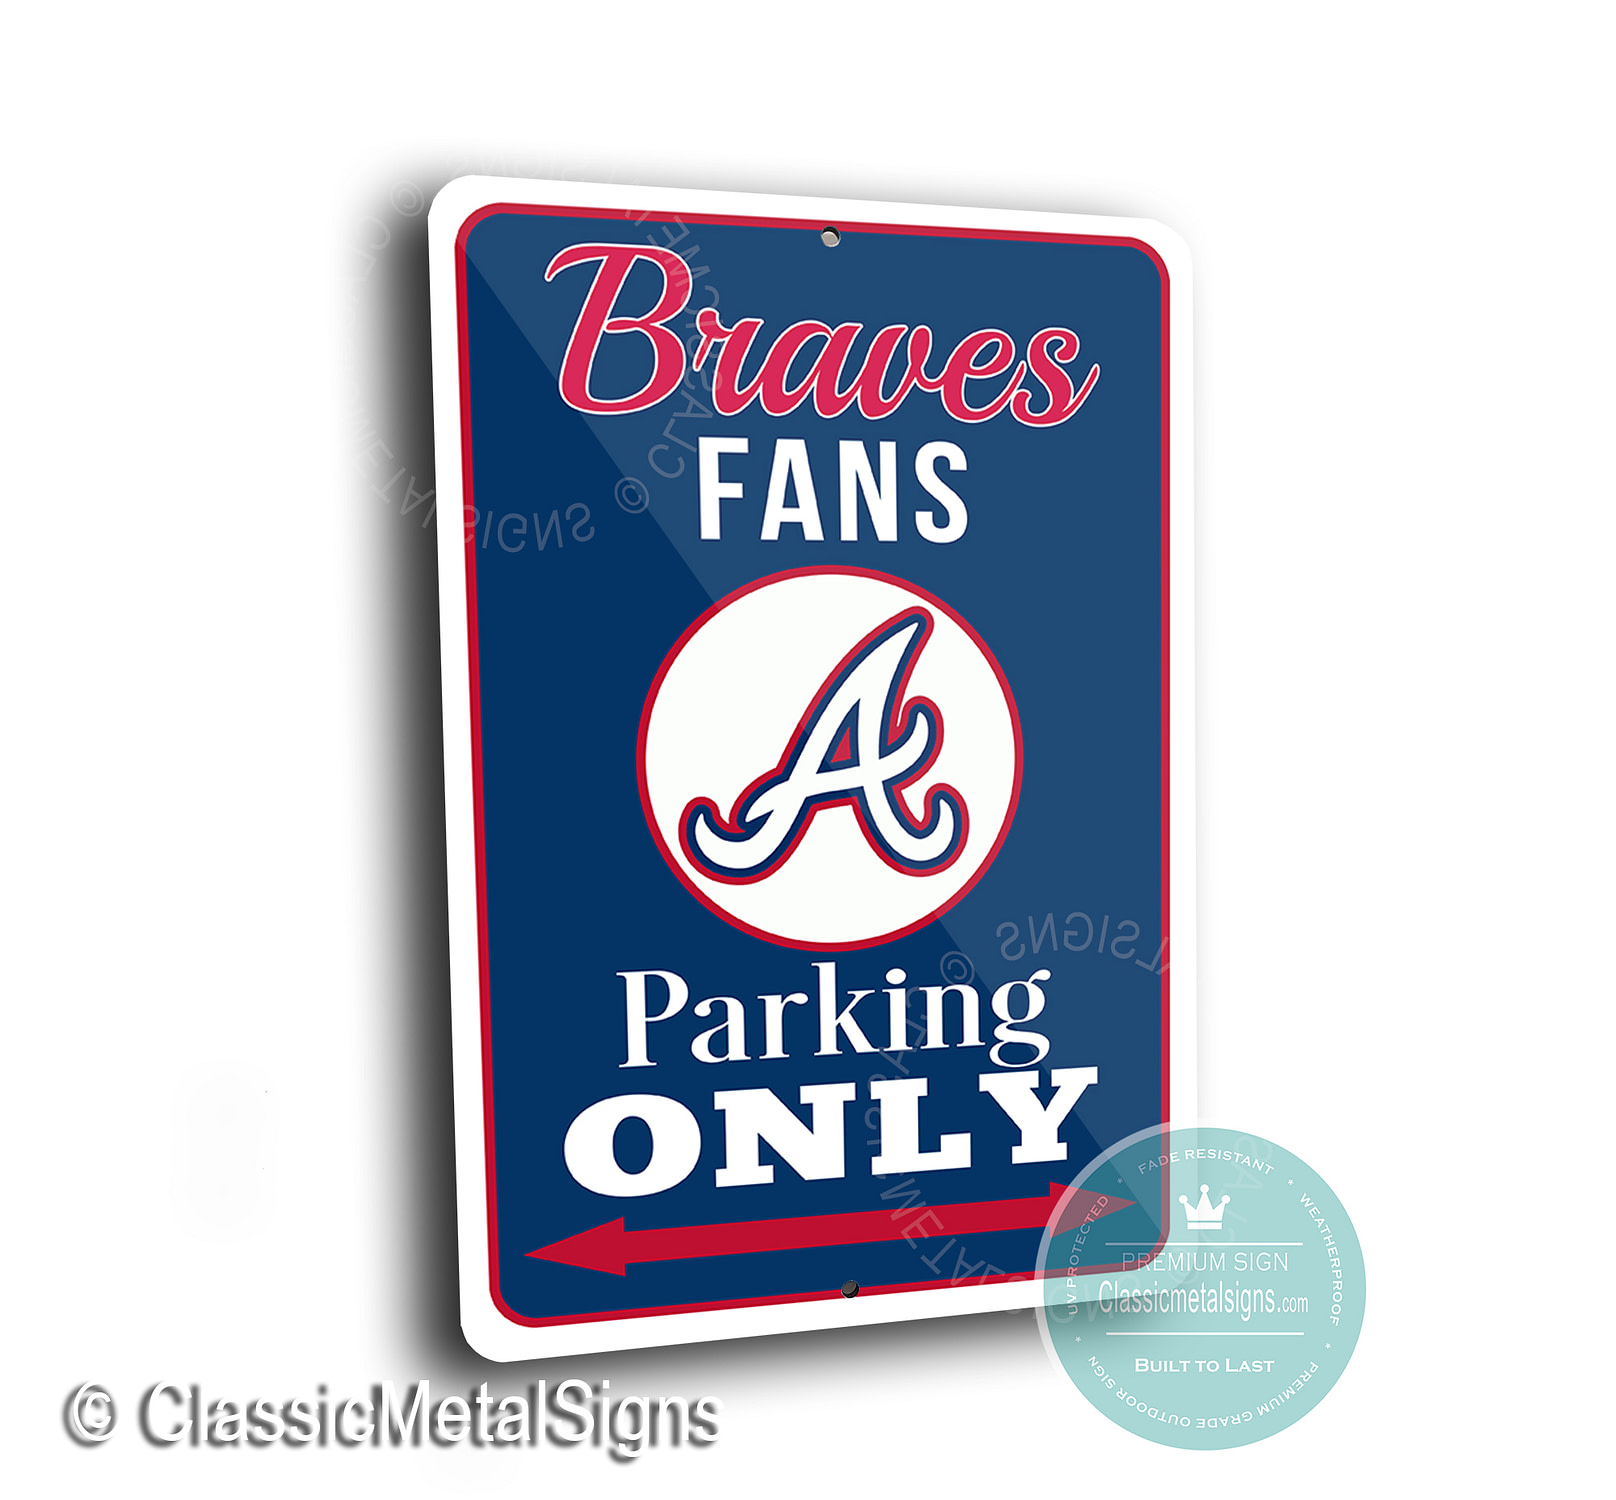 Atlanta Braves Parking Only Signs